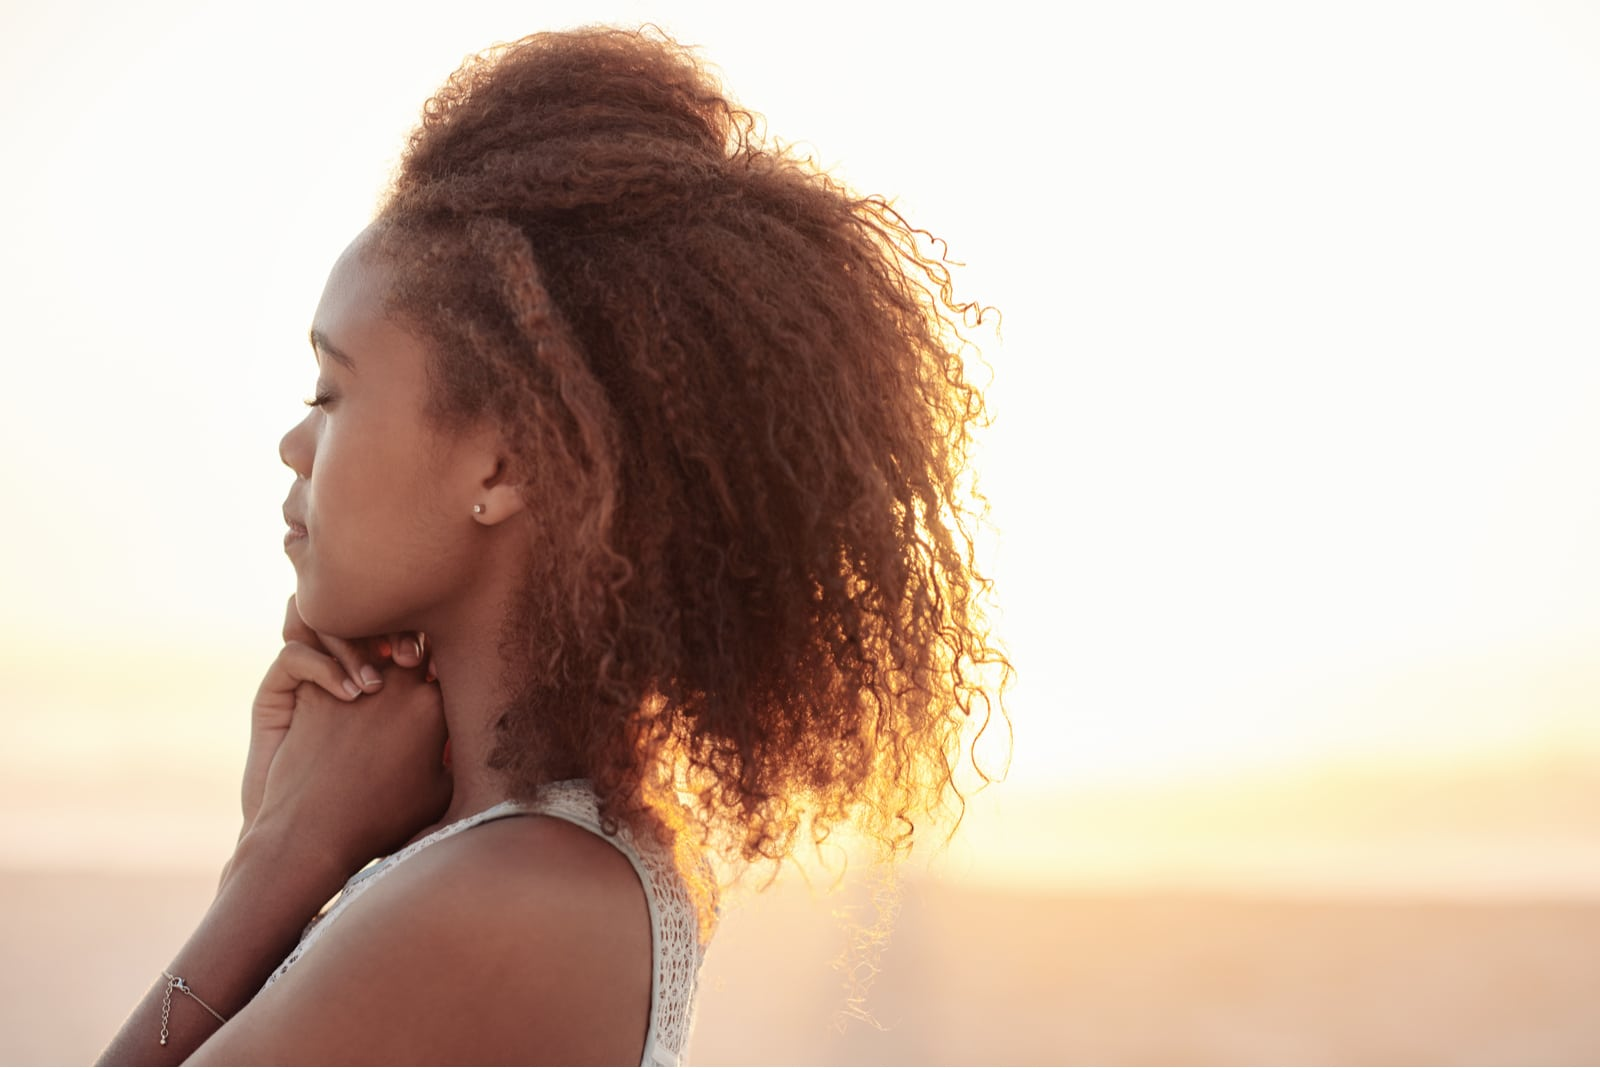 a young black woman enjoys the sunset